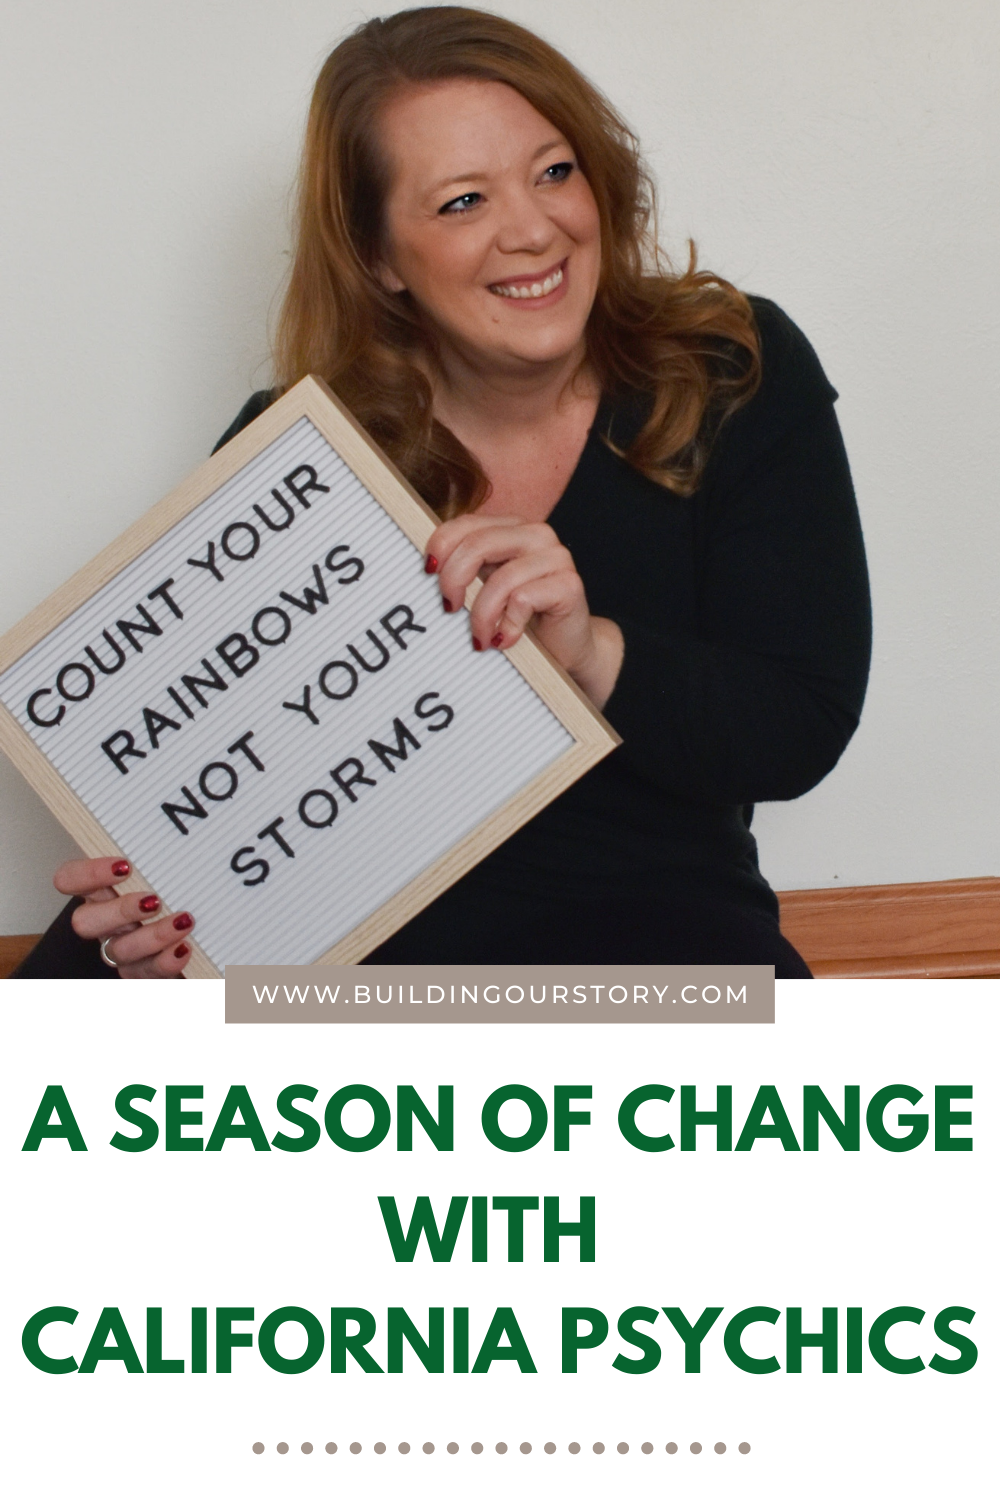 A Season of Change With California Psychics. AD Self-care included me having a chat with a psychic advisor from @capsychics . Helping me find clarity in this journey. Use the code: building5 and have $5 added to your account when you purchase your first reading!